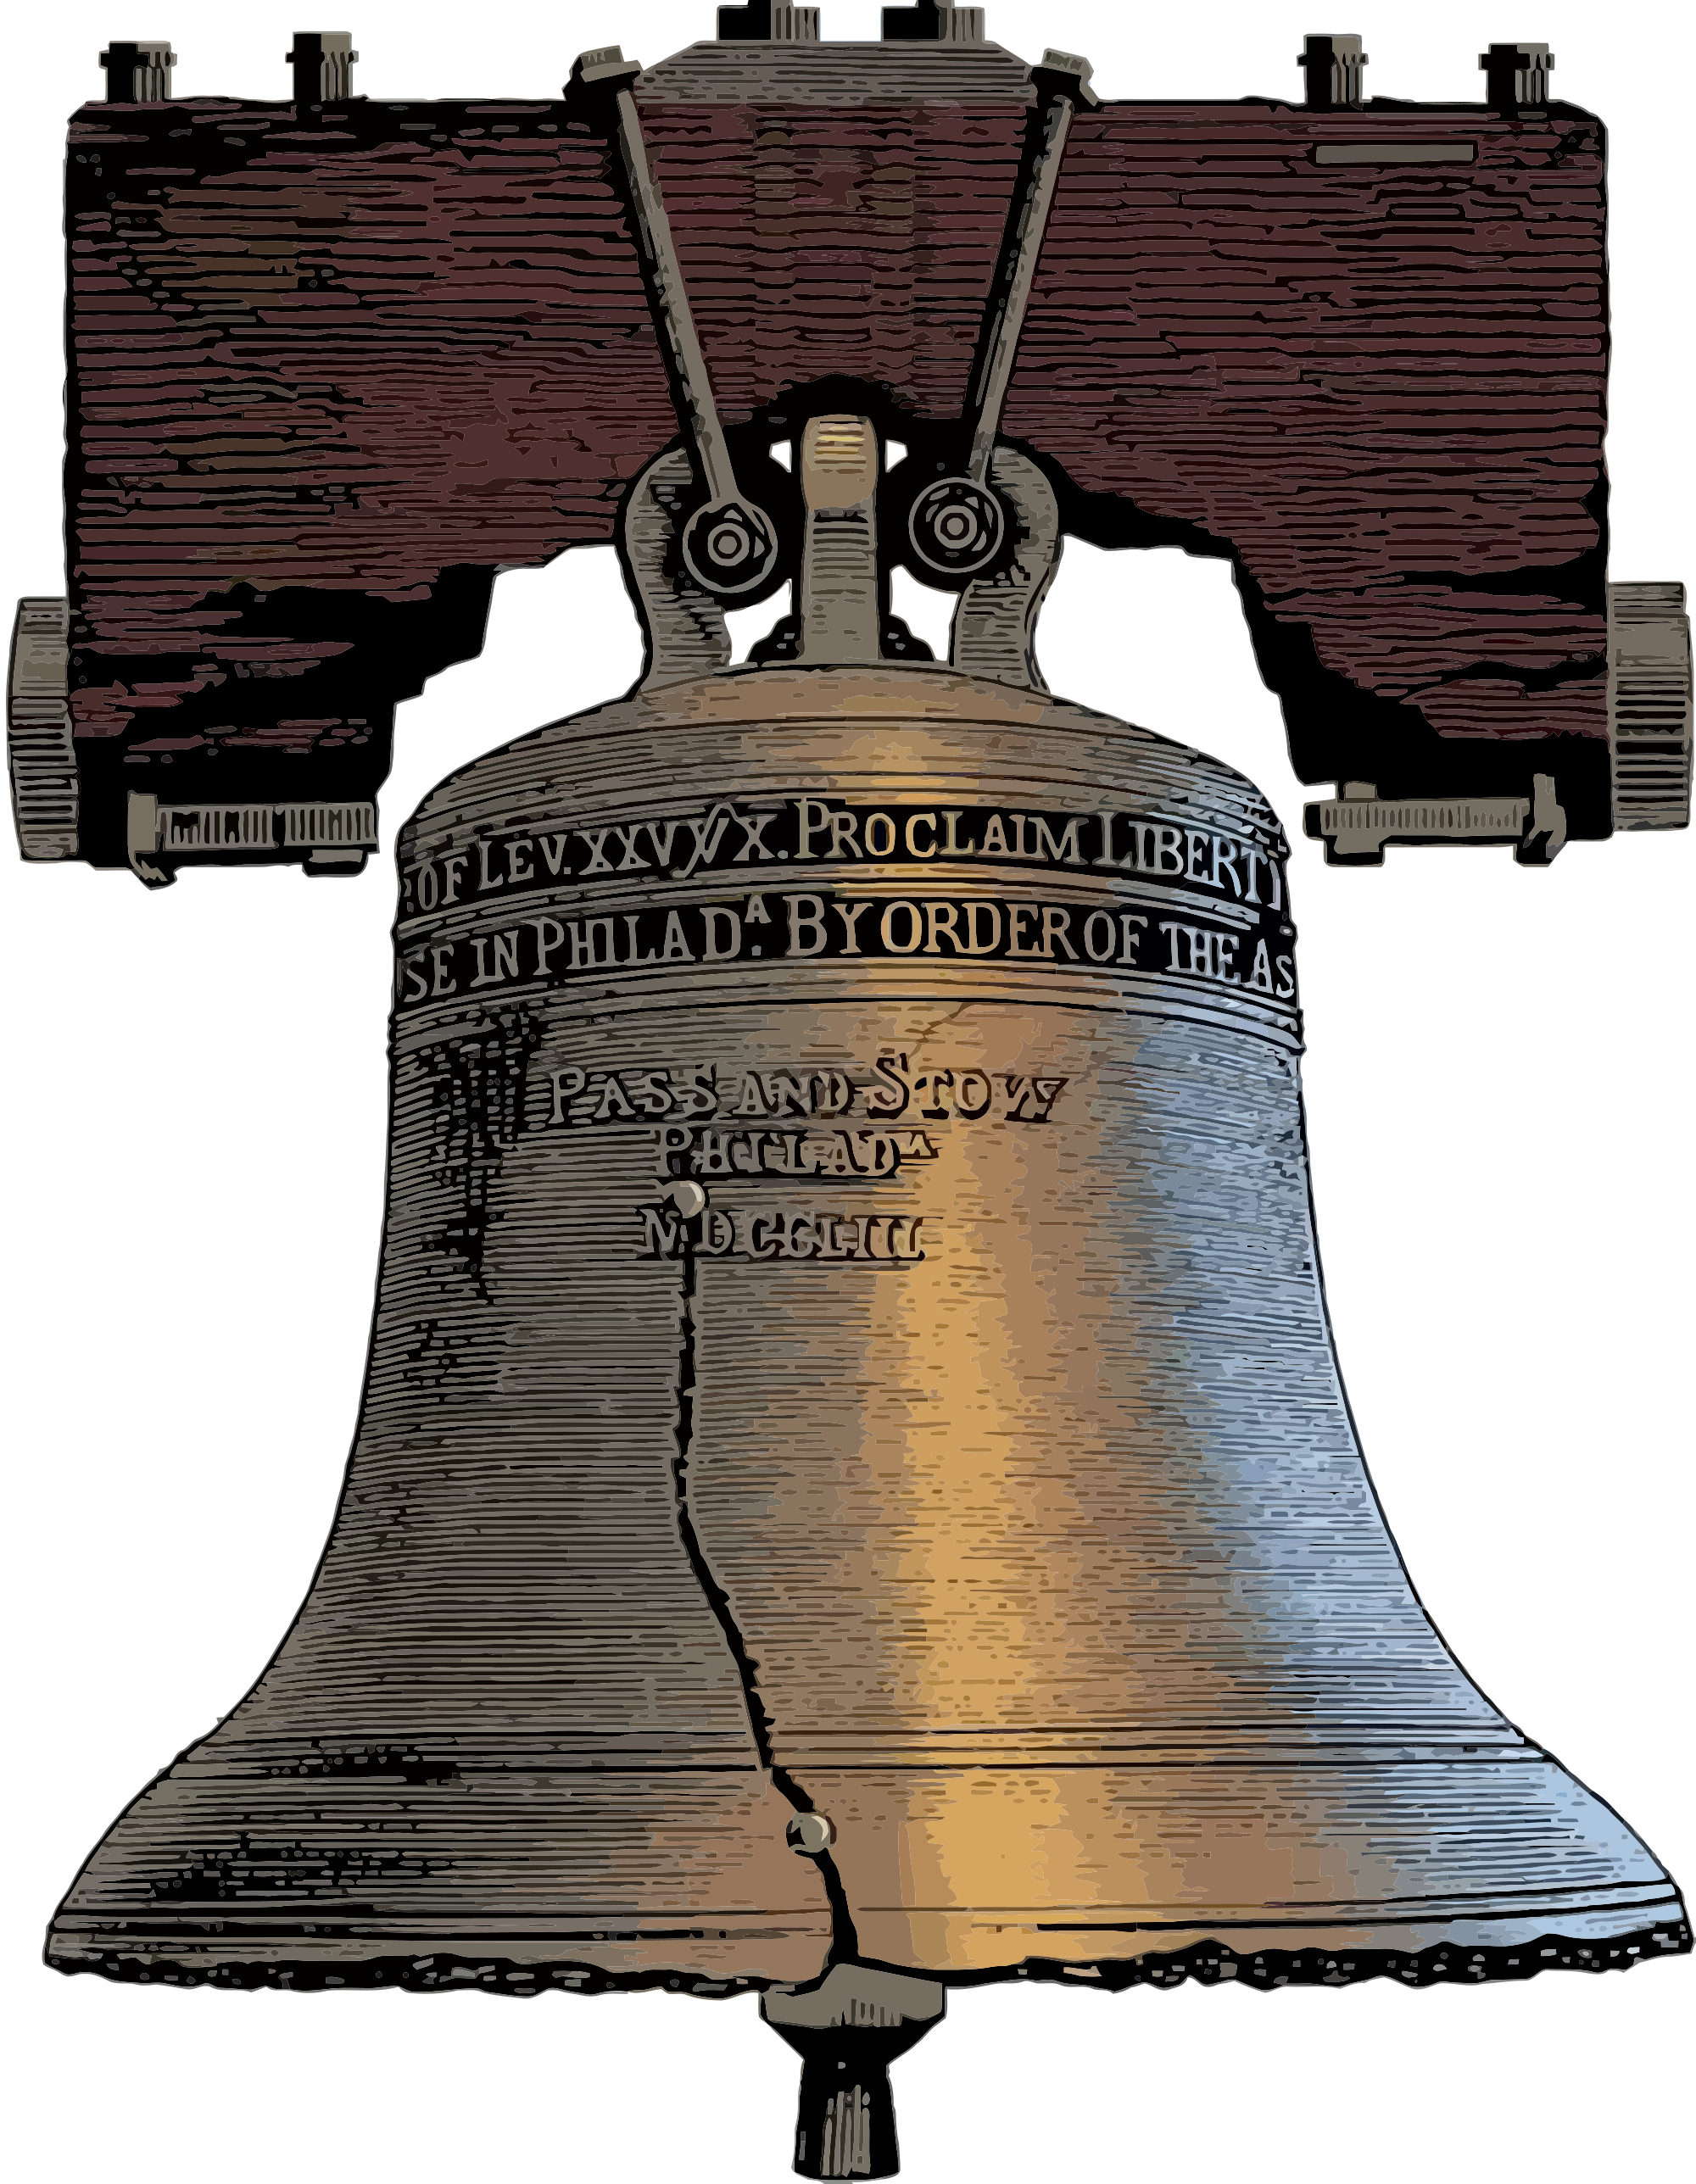 Liberty bell crack png. Libertarianism and the blockchain